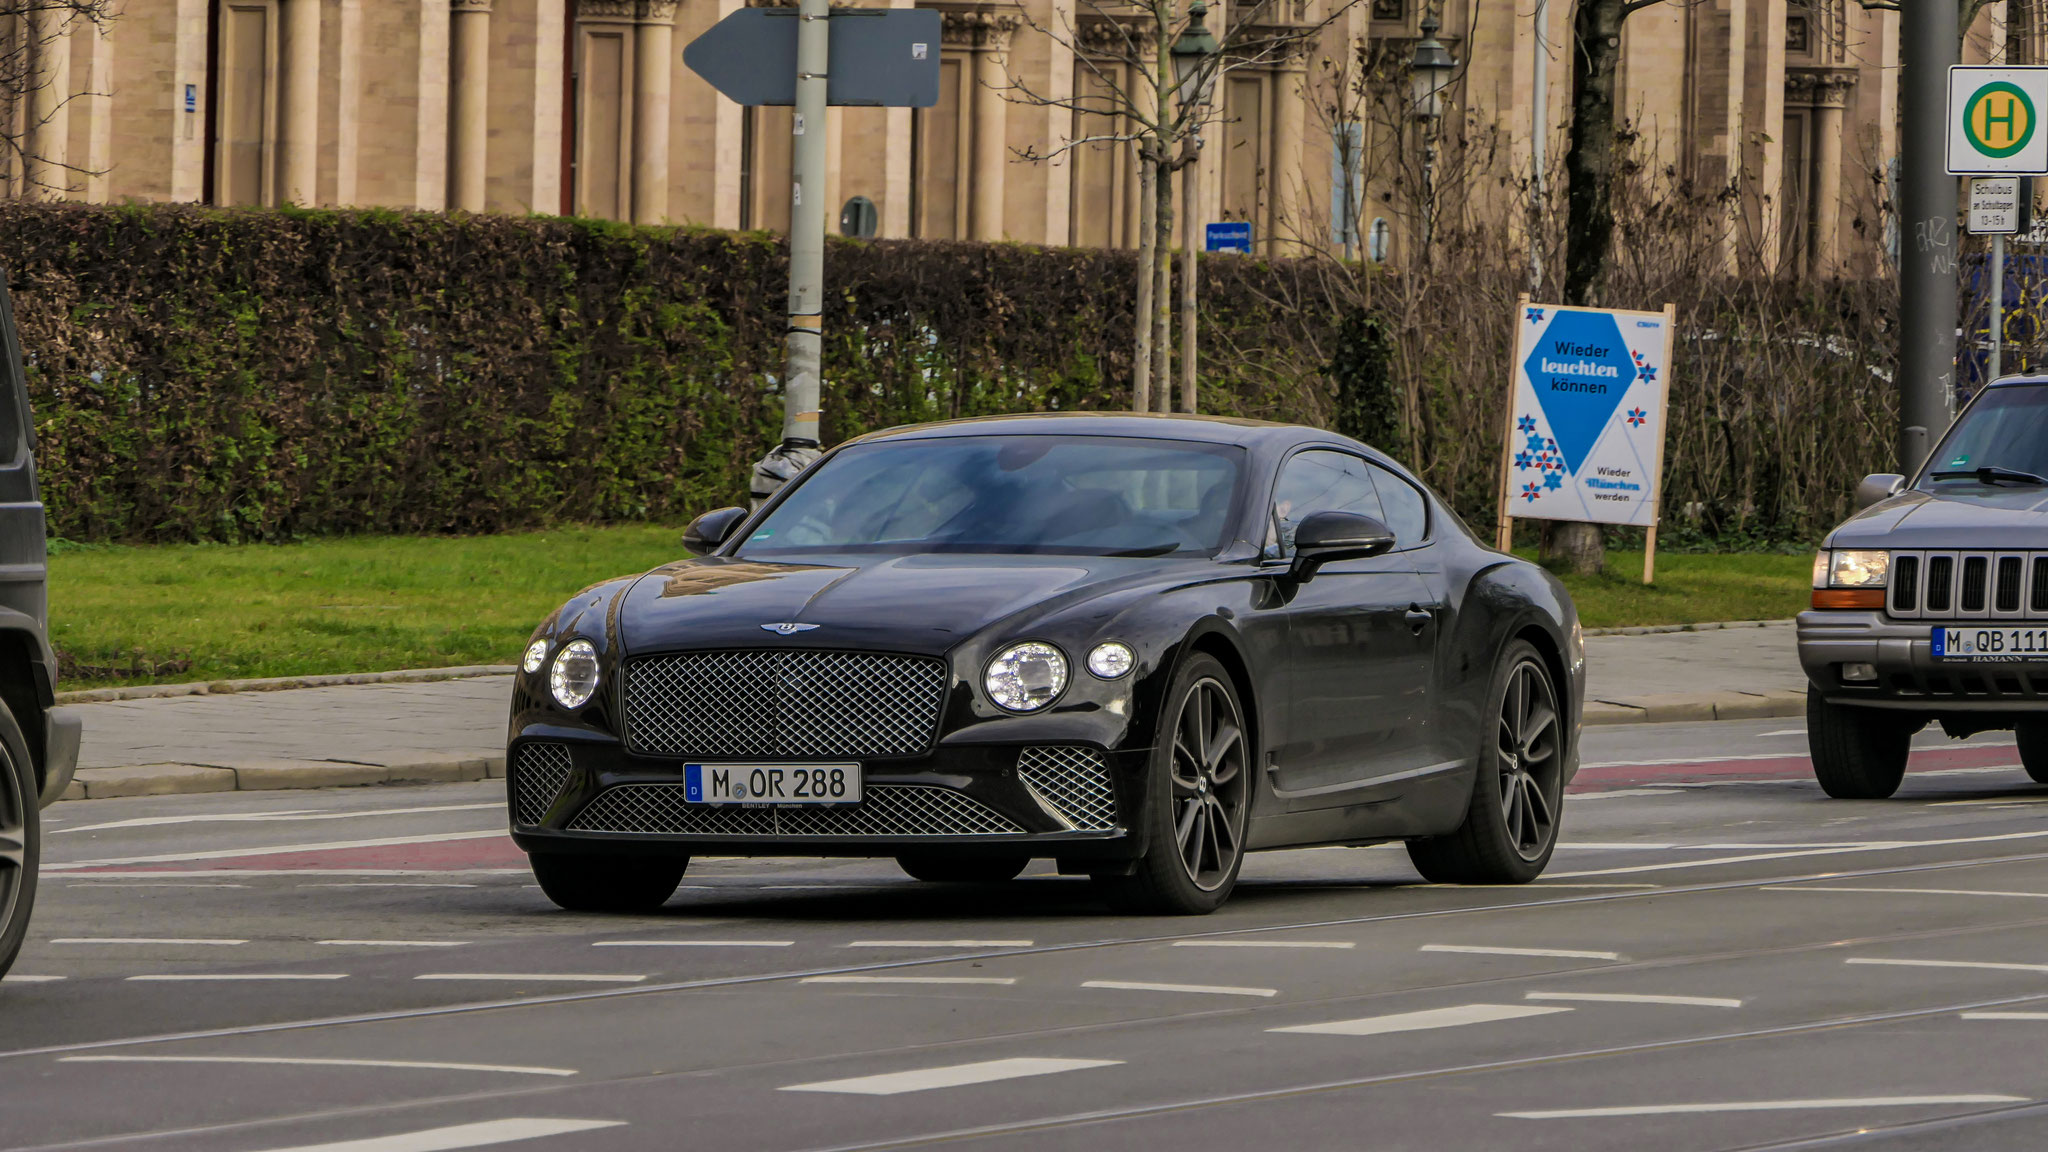 Bentley Continental GT - M-OR-288